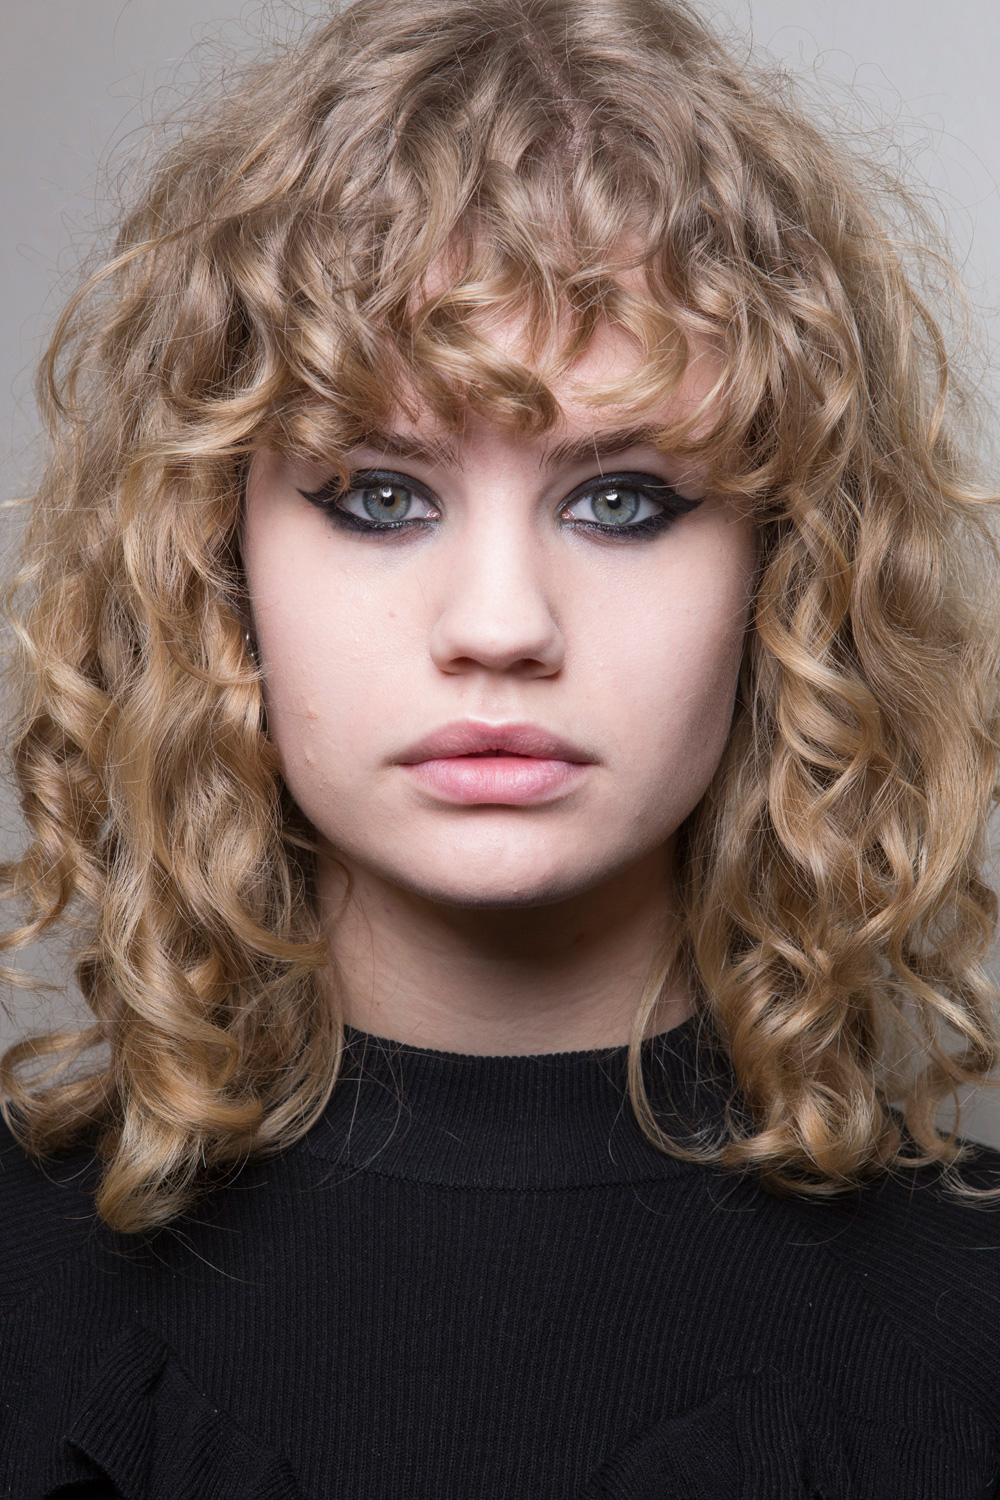 CHLOÉ Casual Curly Hairstyles 2017 Autumn